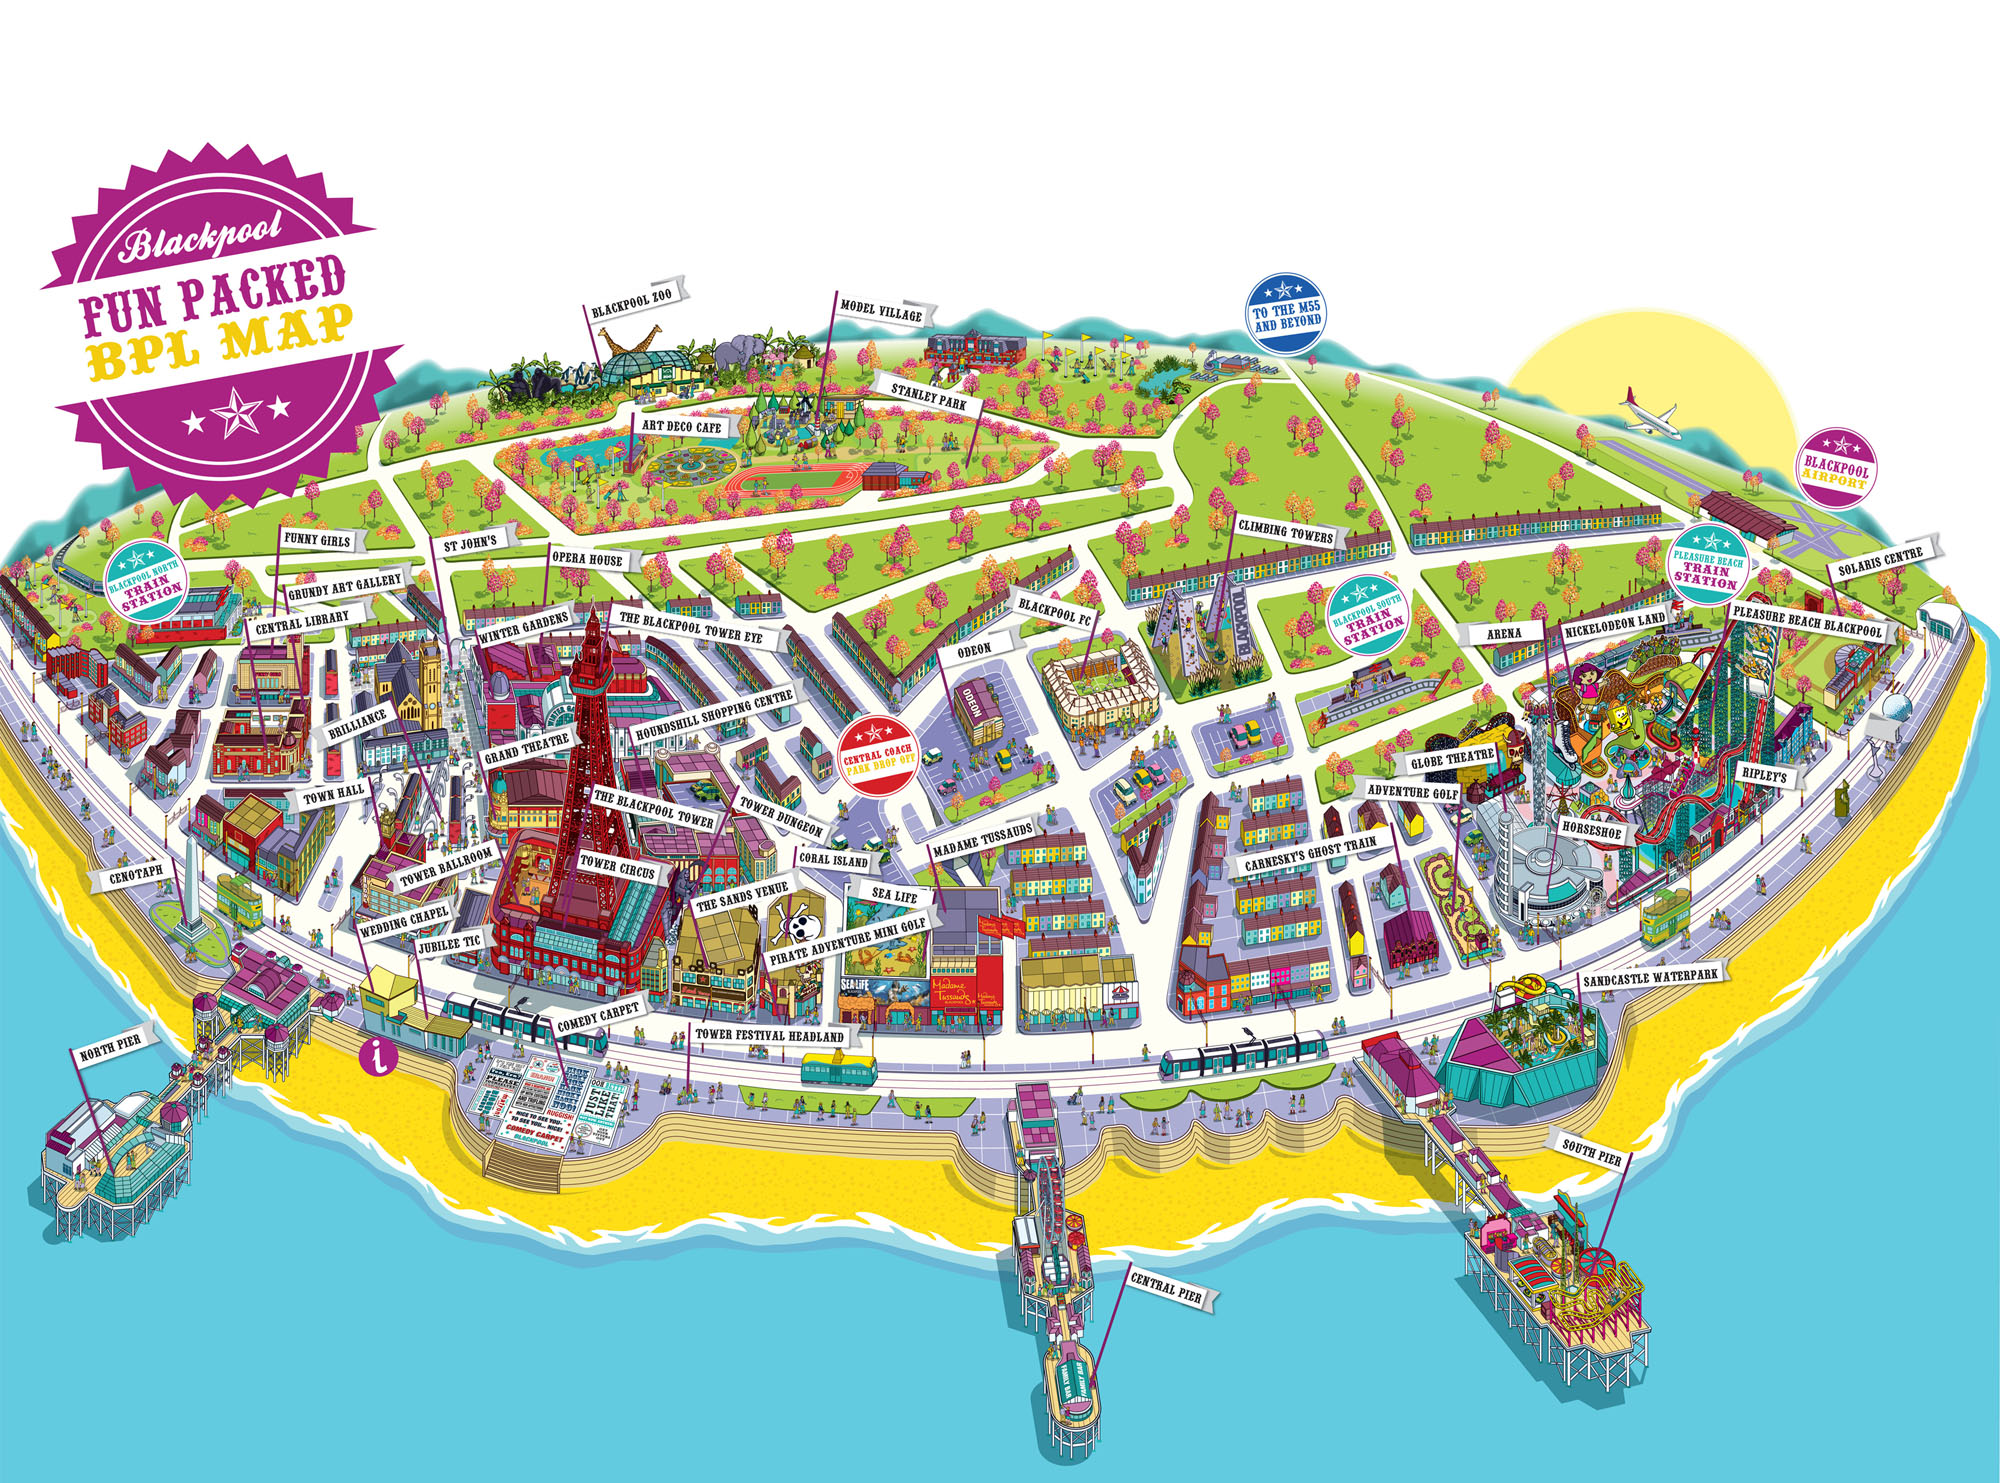 Map Of Blackpool Large Blackpool Maps for Free Download and Print | High Resolution  Map Of Blackpool